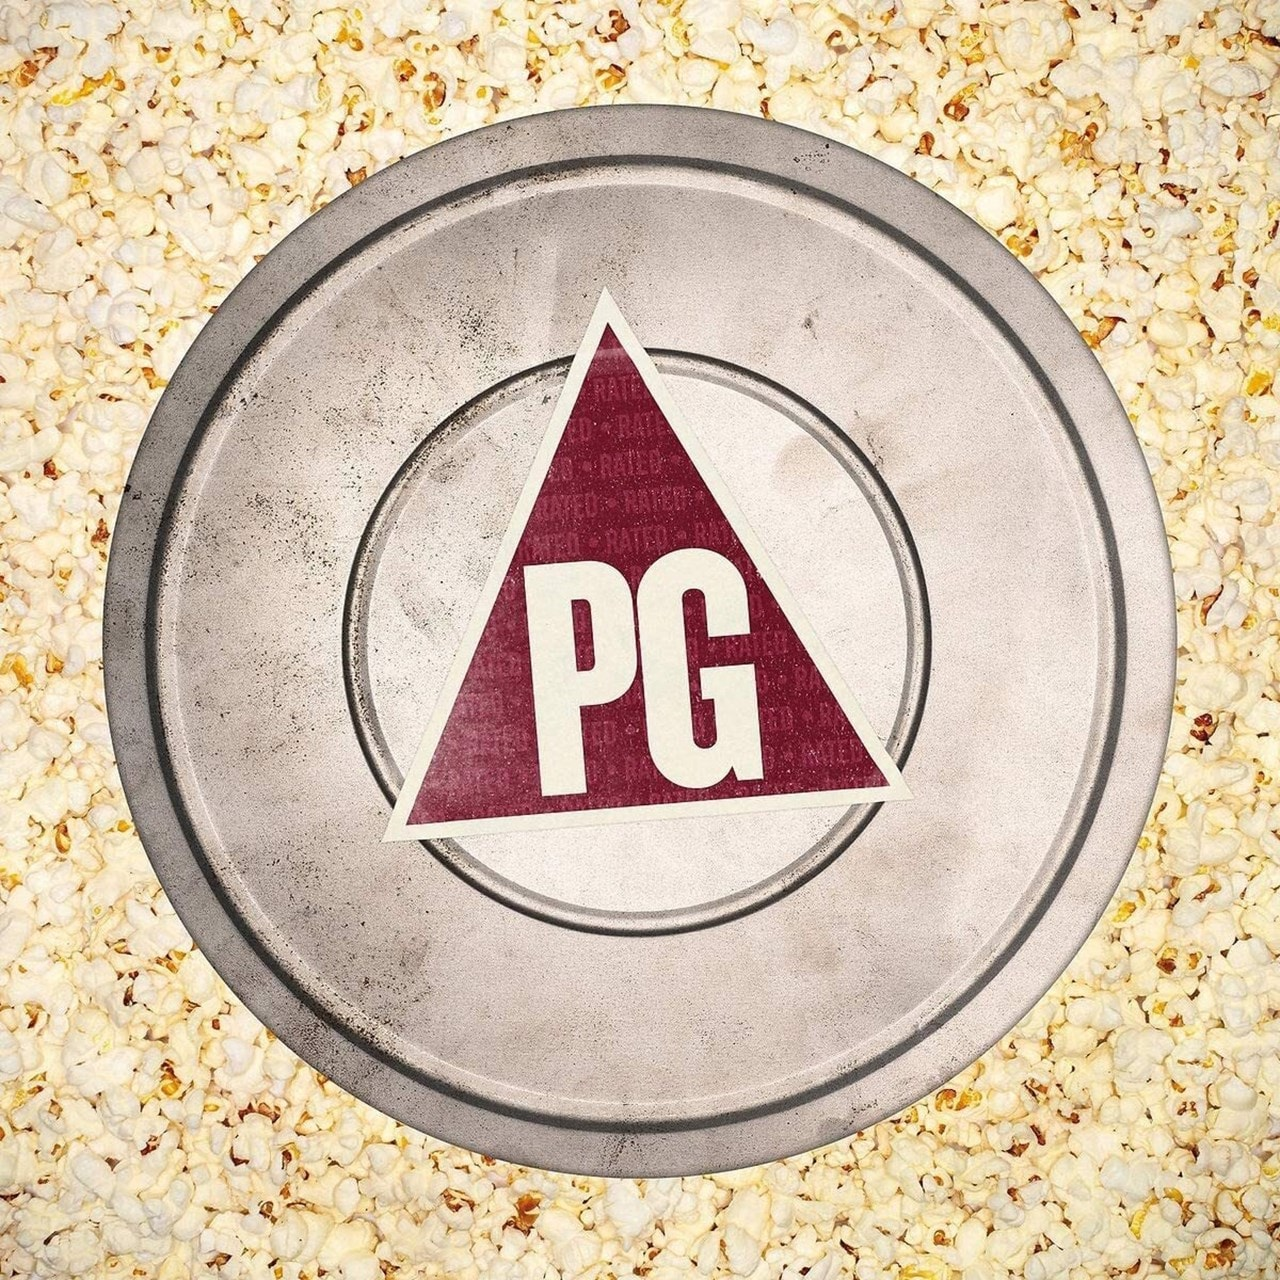 Rated PG - 1